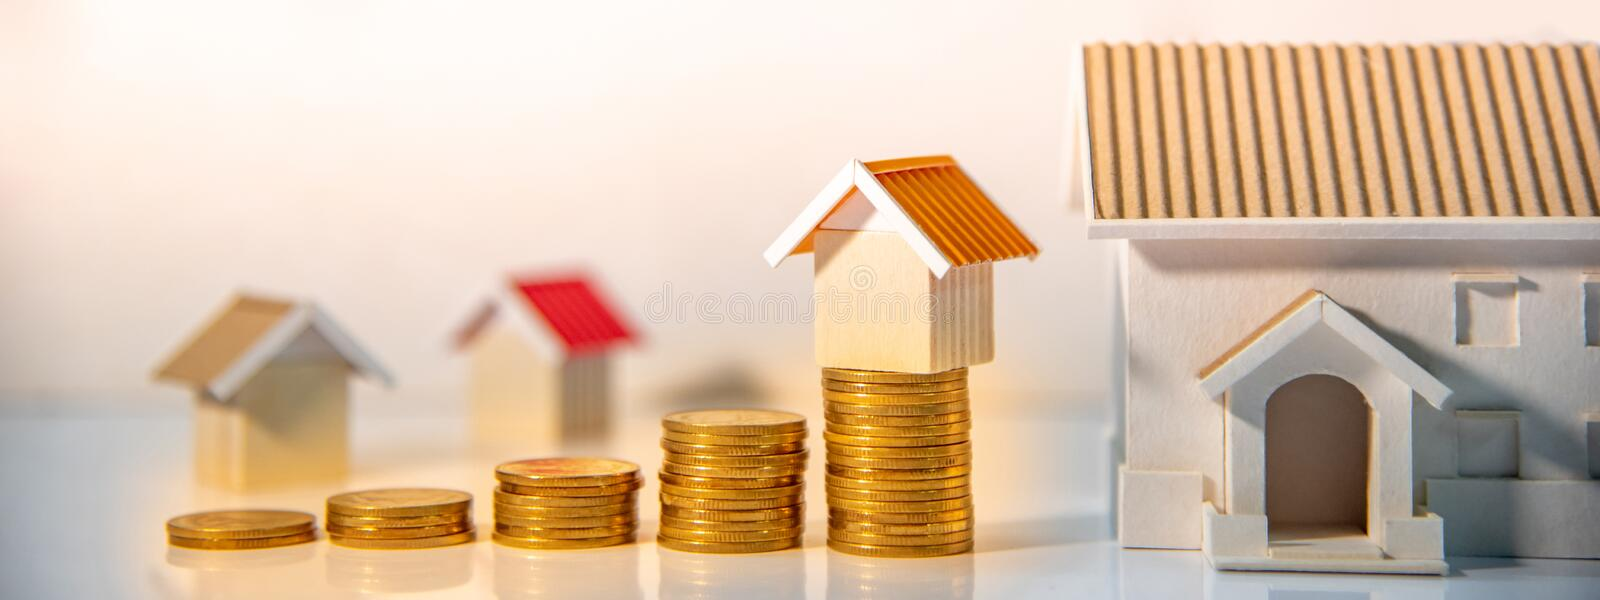 Real estate investment. Property ladder concept. Real estate investment or Home mortgage loan rate. Property ladder concept. Coins stack and house models on the royalty free stock image